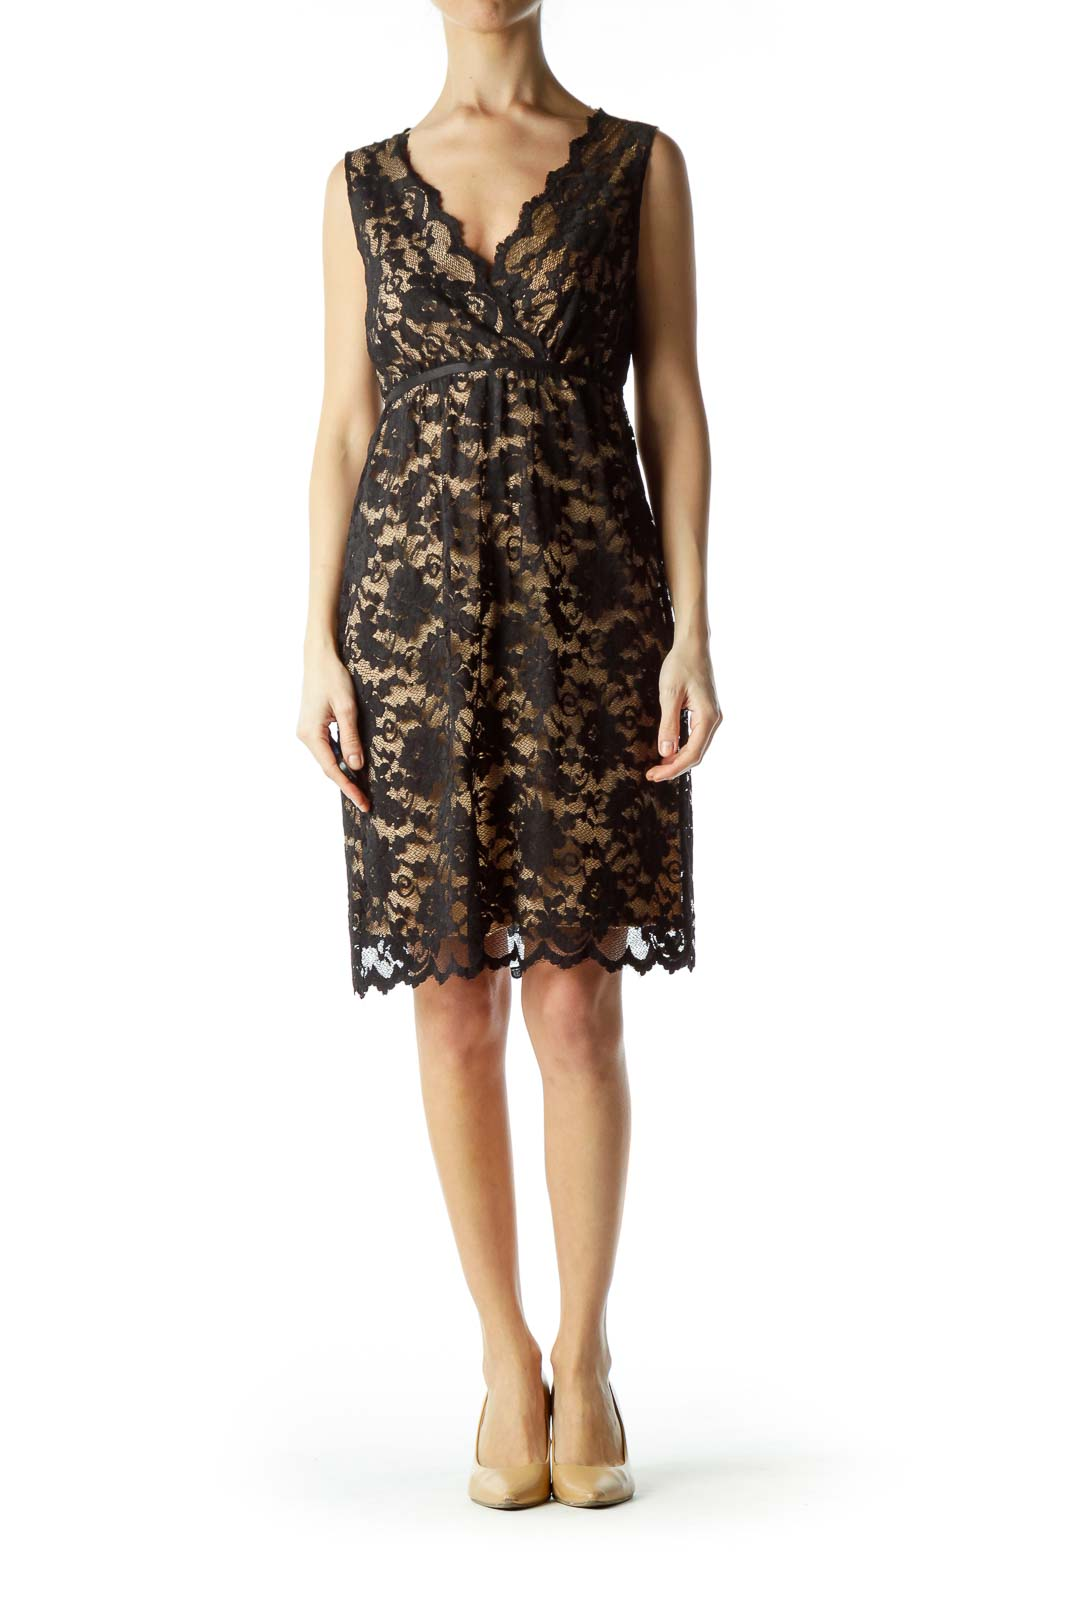 Black Lace Scalloped Empire Waist Dress